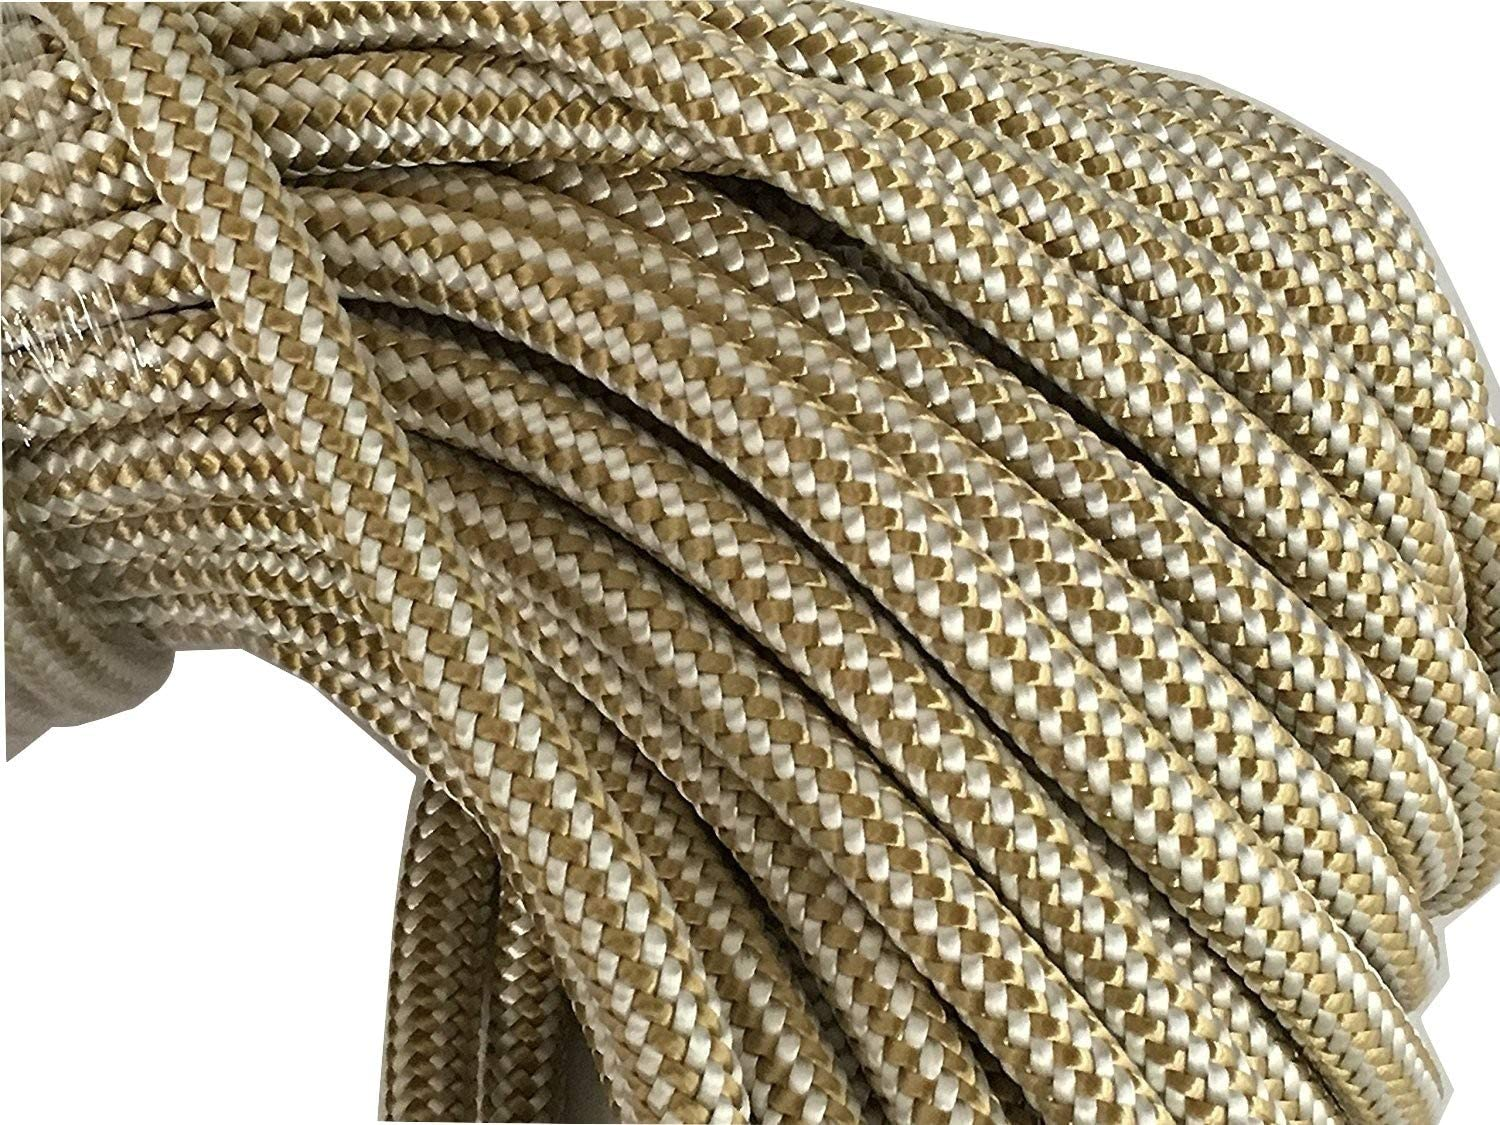 1//2 Inch by 300 Feet Gold Double Braid Nylon Rope